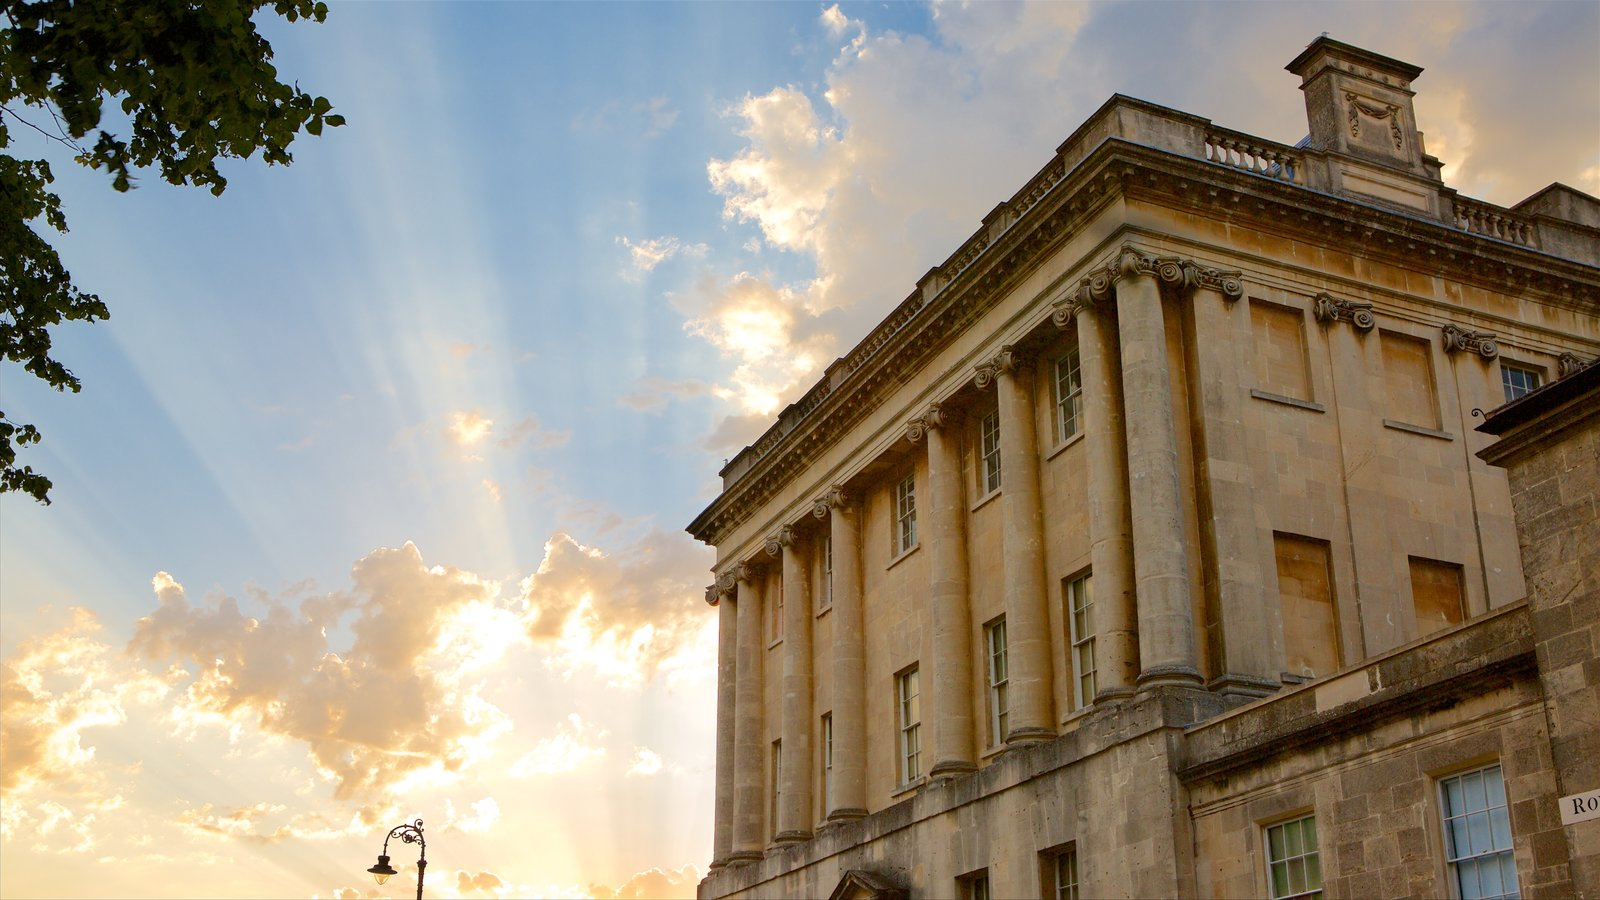 Royal Crescent showing an administrative buidling, a sunset and heritage architecture